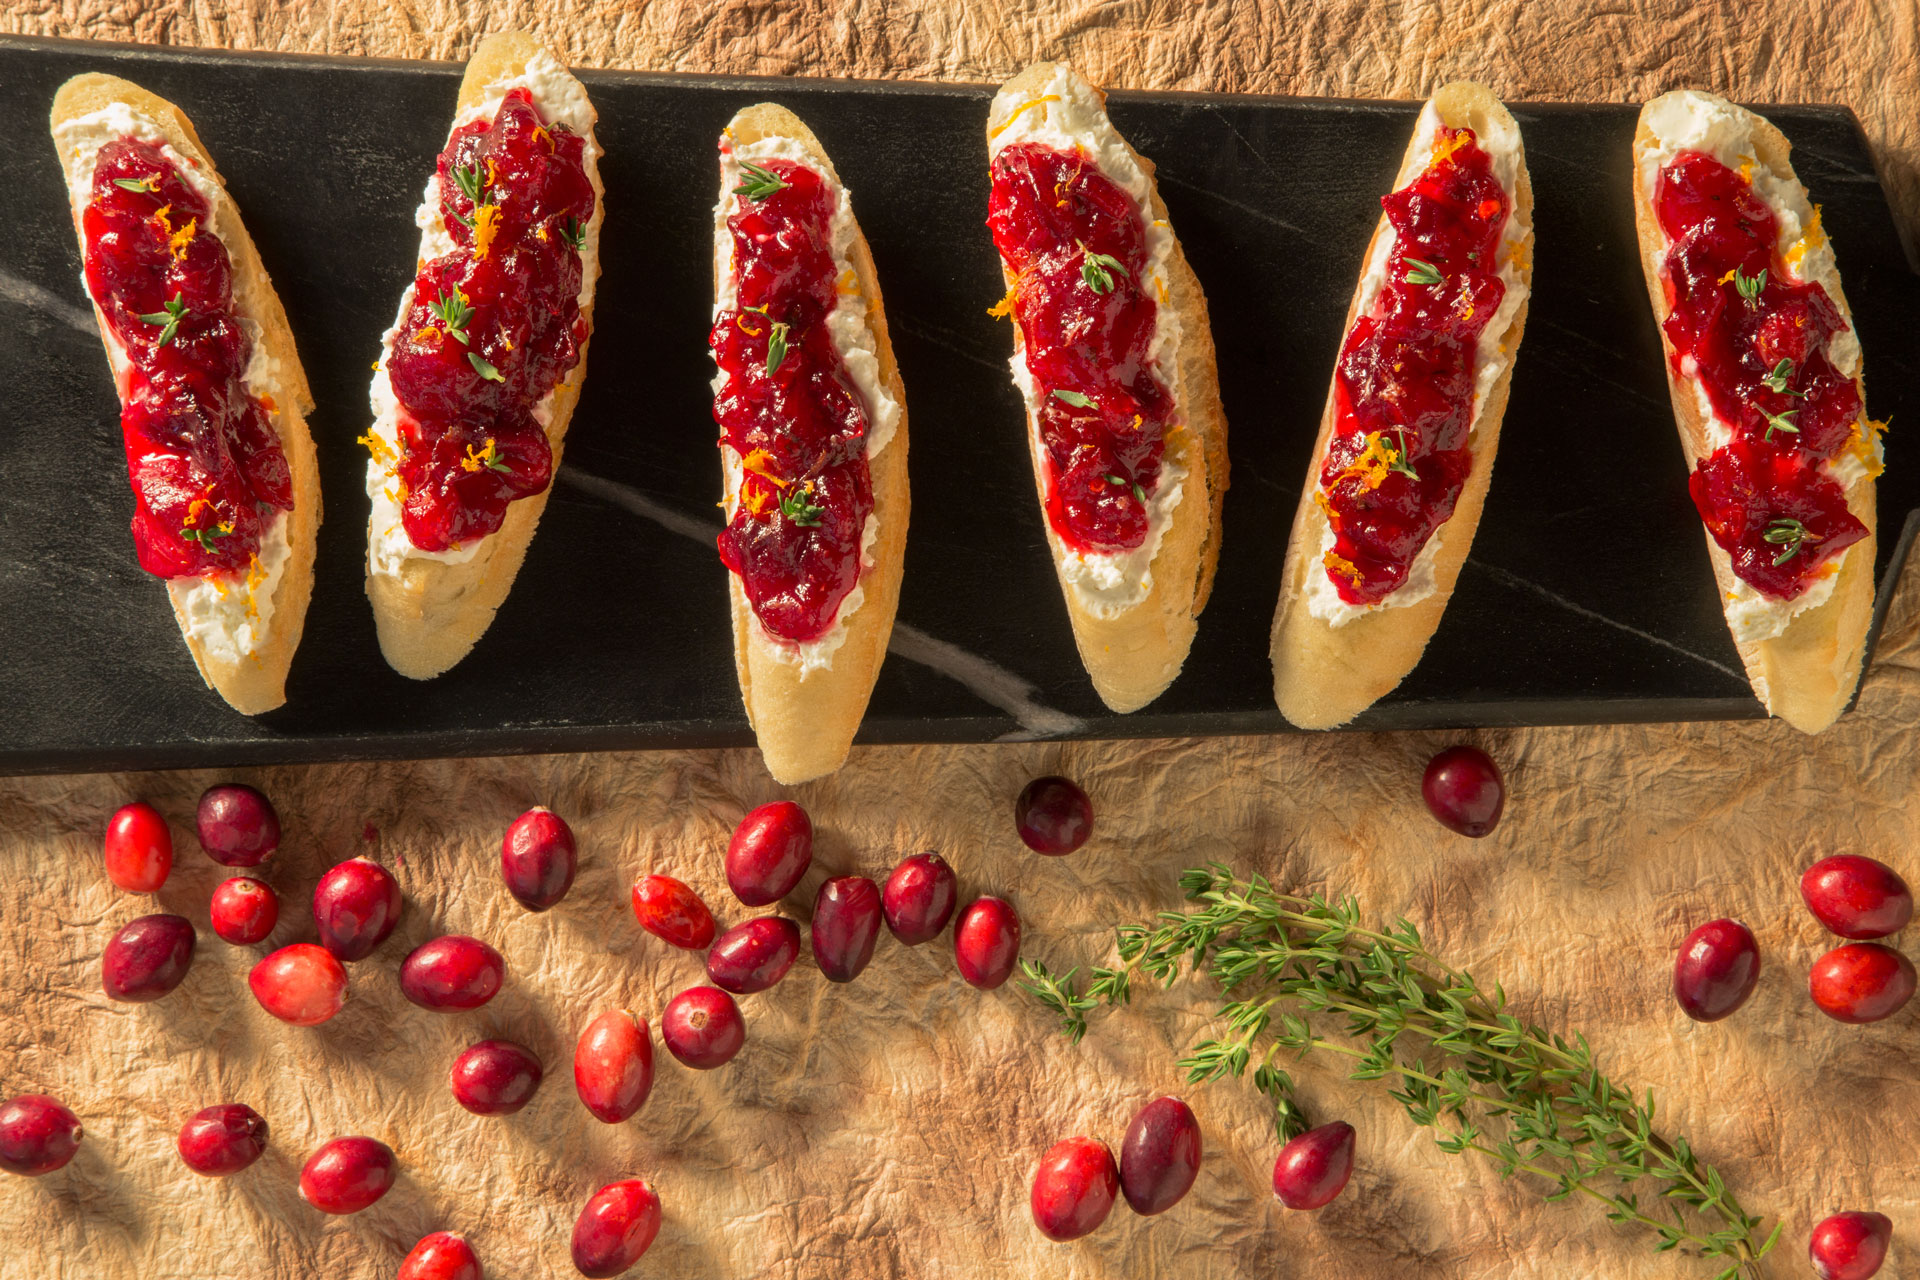 Here's a different way to enjoy the seasonal flavor of fresh cranberries! By the way, zesting is easy–check out ourKitchen Lingo video to learn more.